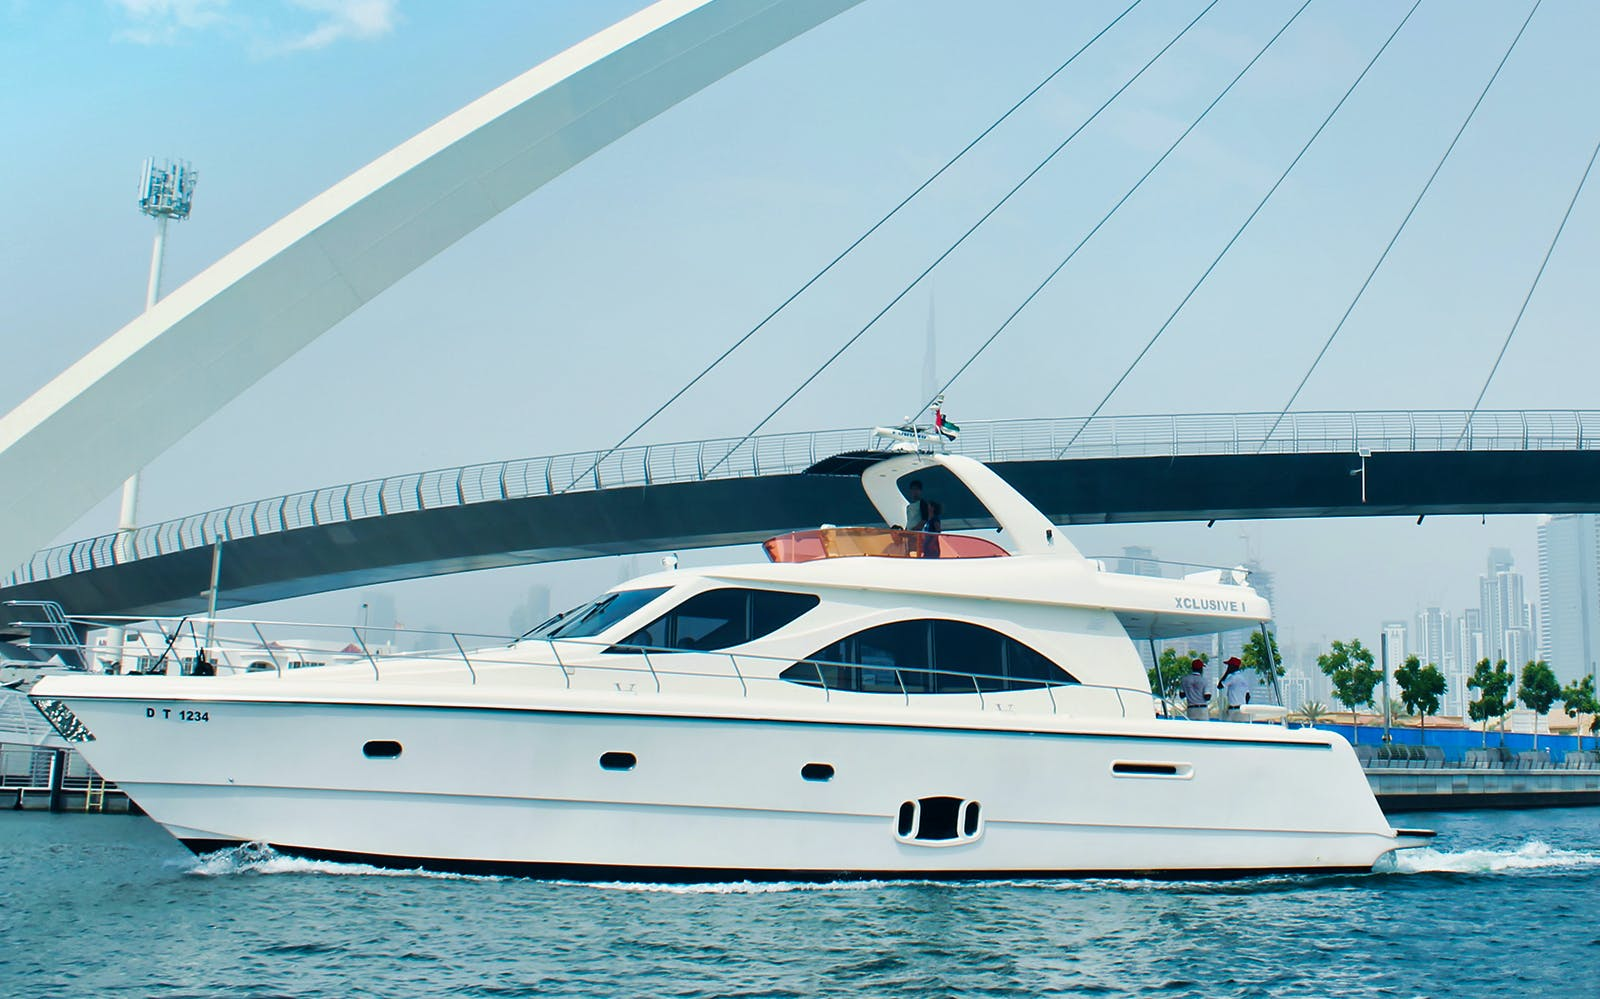 luxury yacht guided tour with food - dubai marina-2